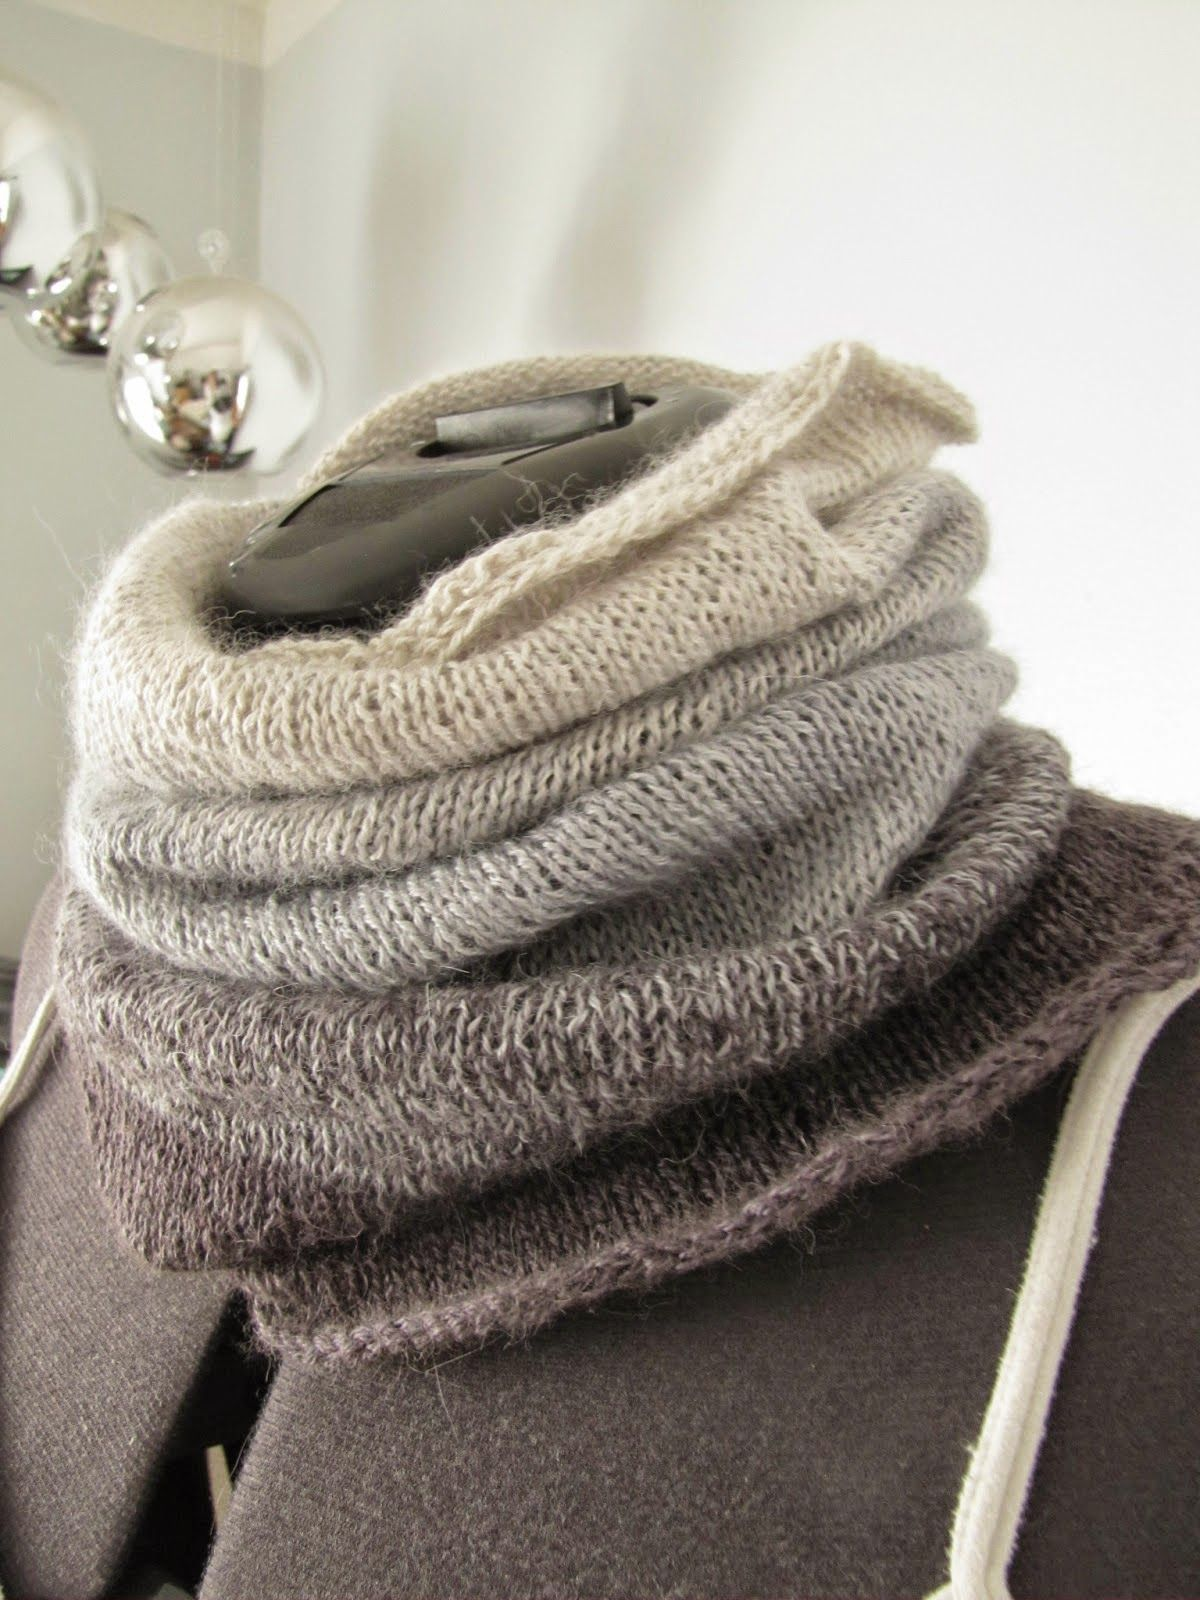 Ombre cowl - free pattern   Crochet, Lace knitting, Cowl ...